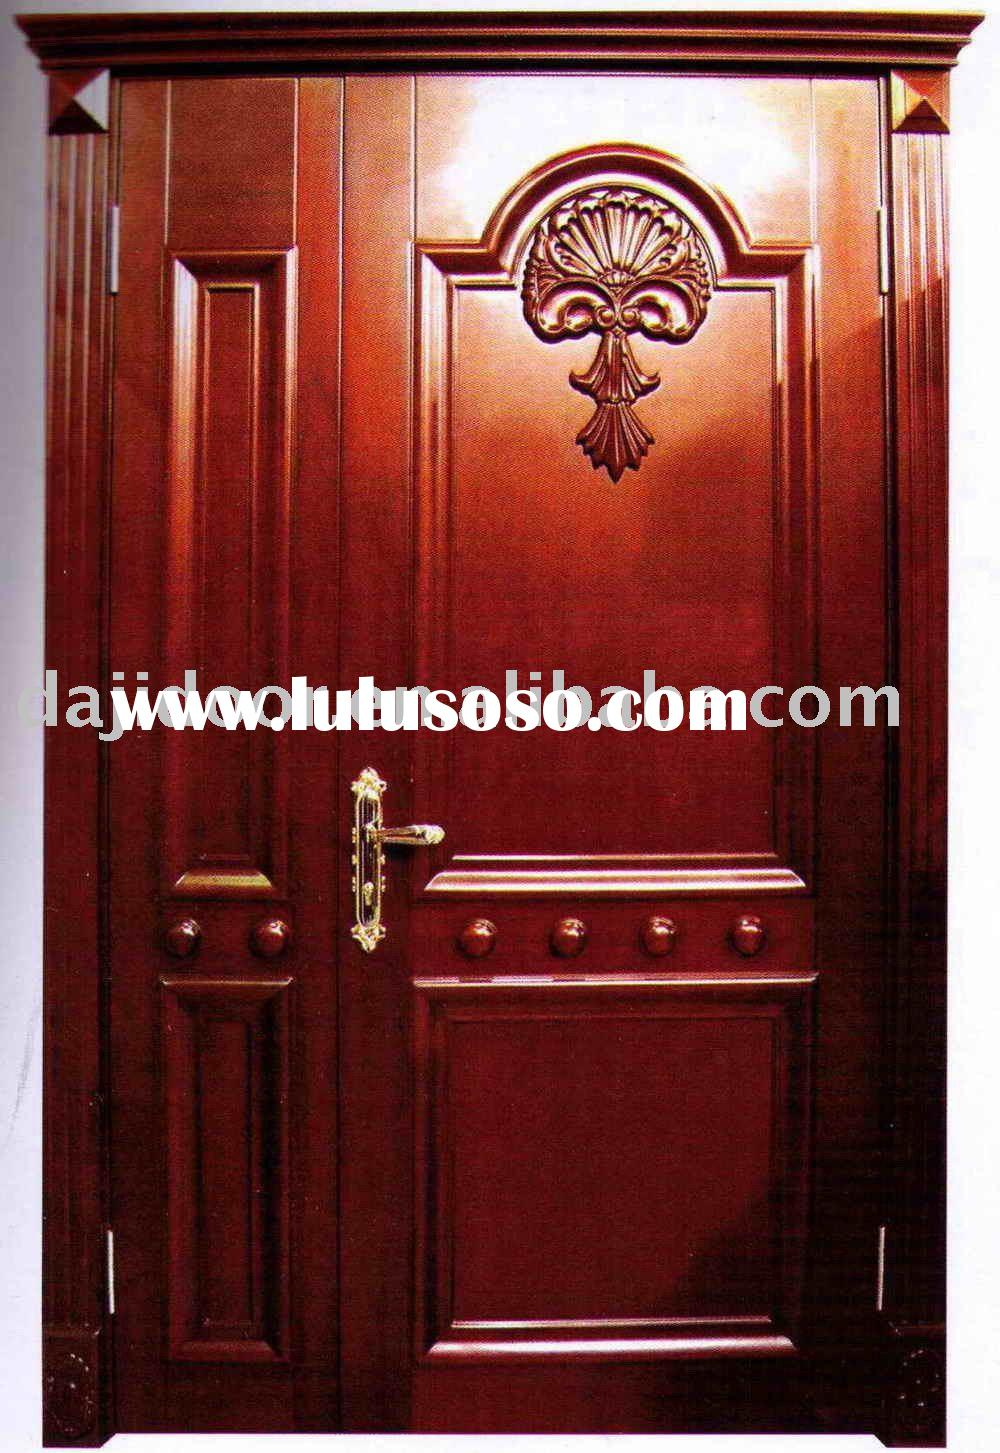 Main Door Design, Main Door Design Manufacturers In LuLuSoSo.com .